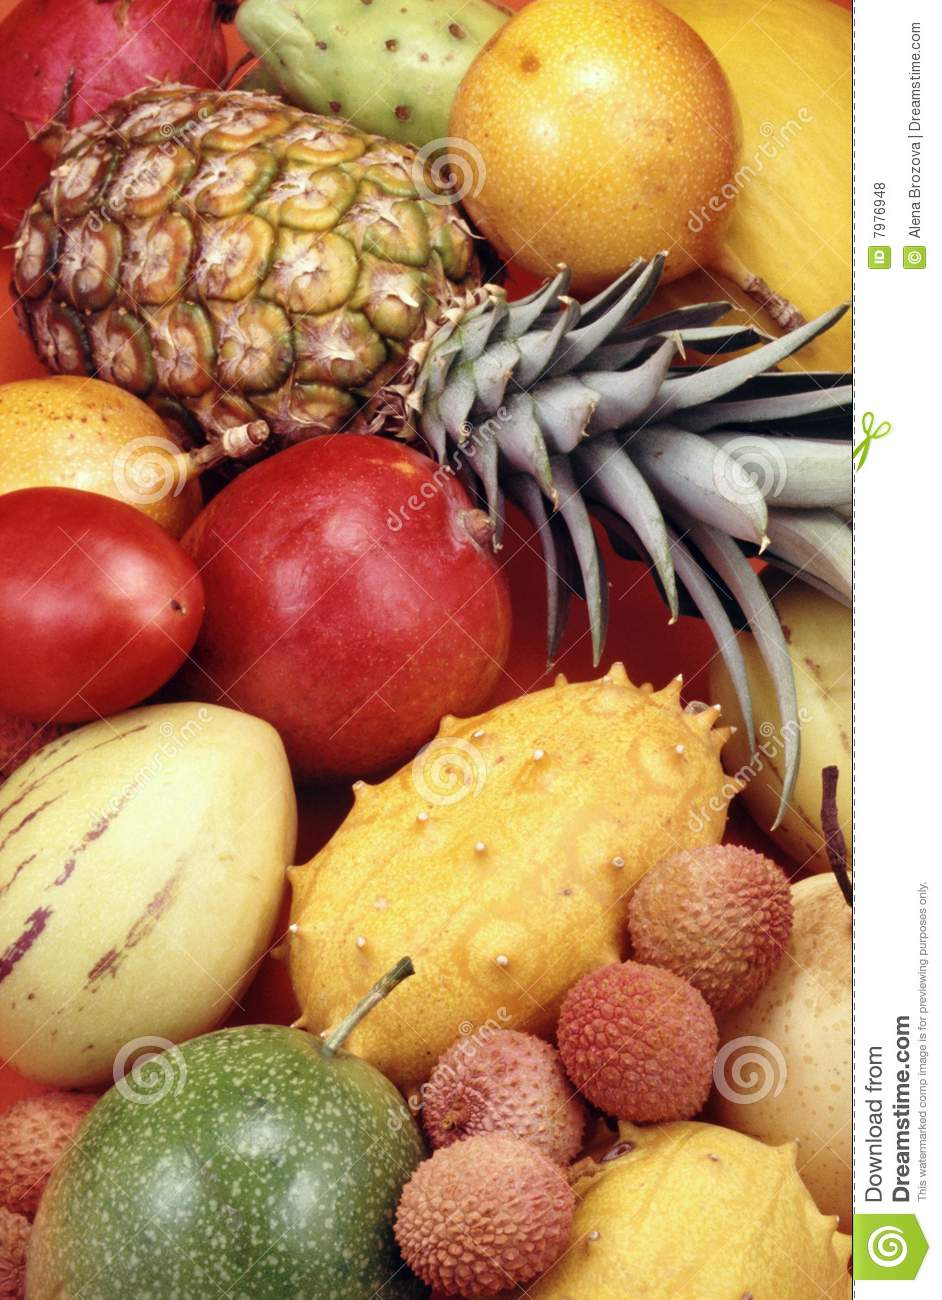 Tropical Fruits And Vegetables Royalty Free Stock Photos ...